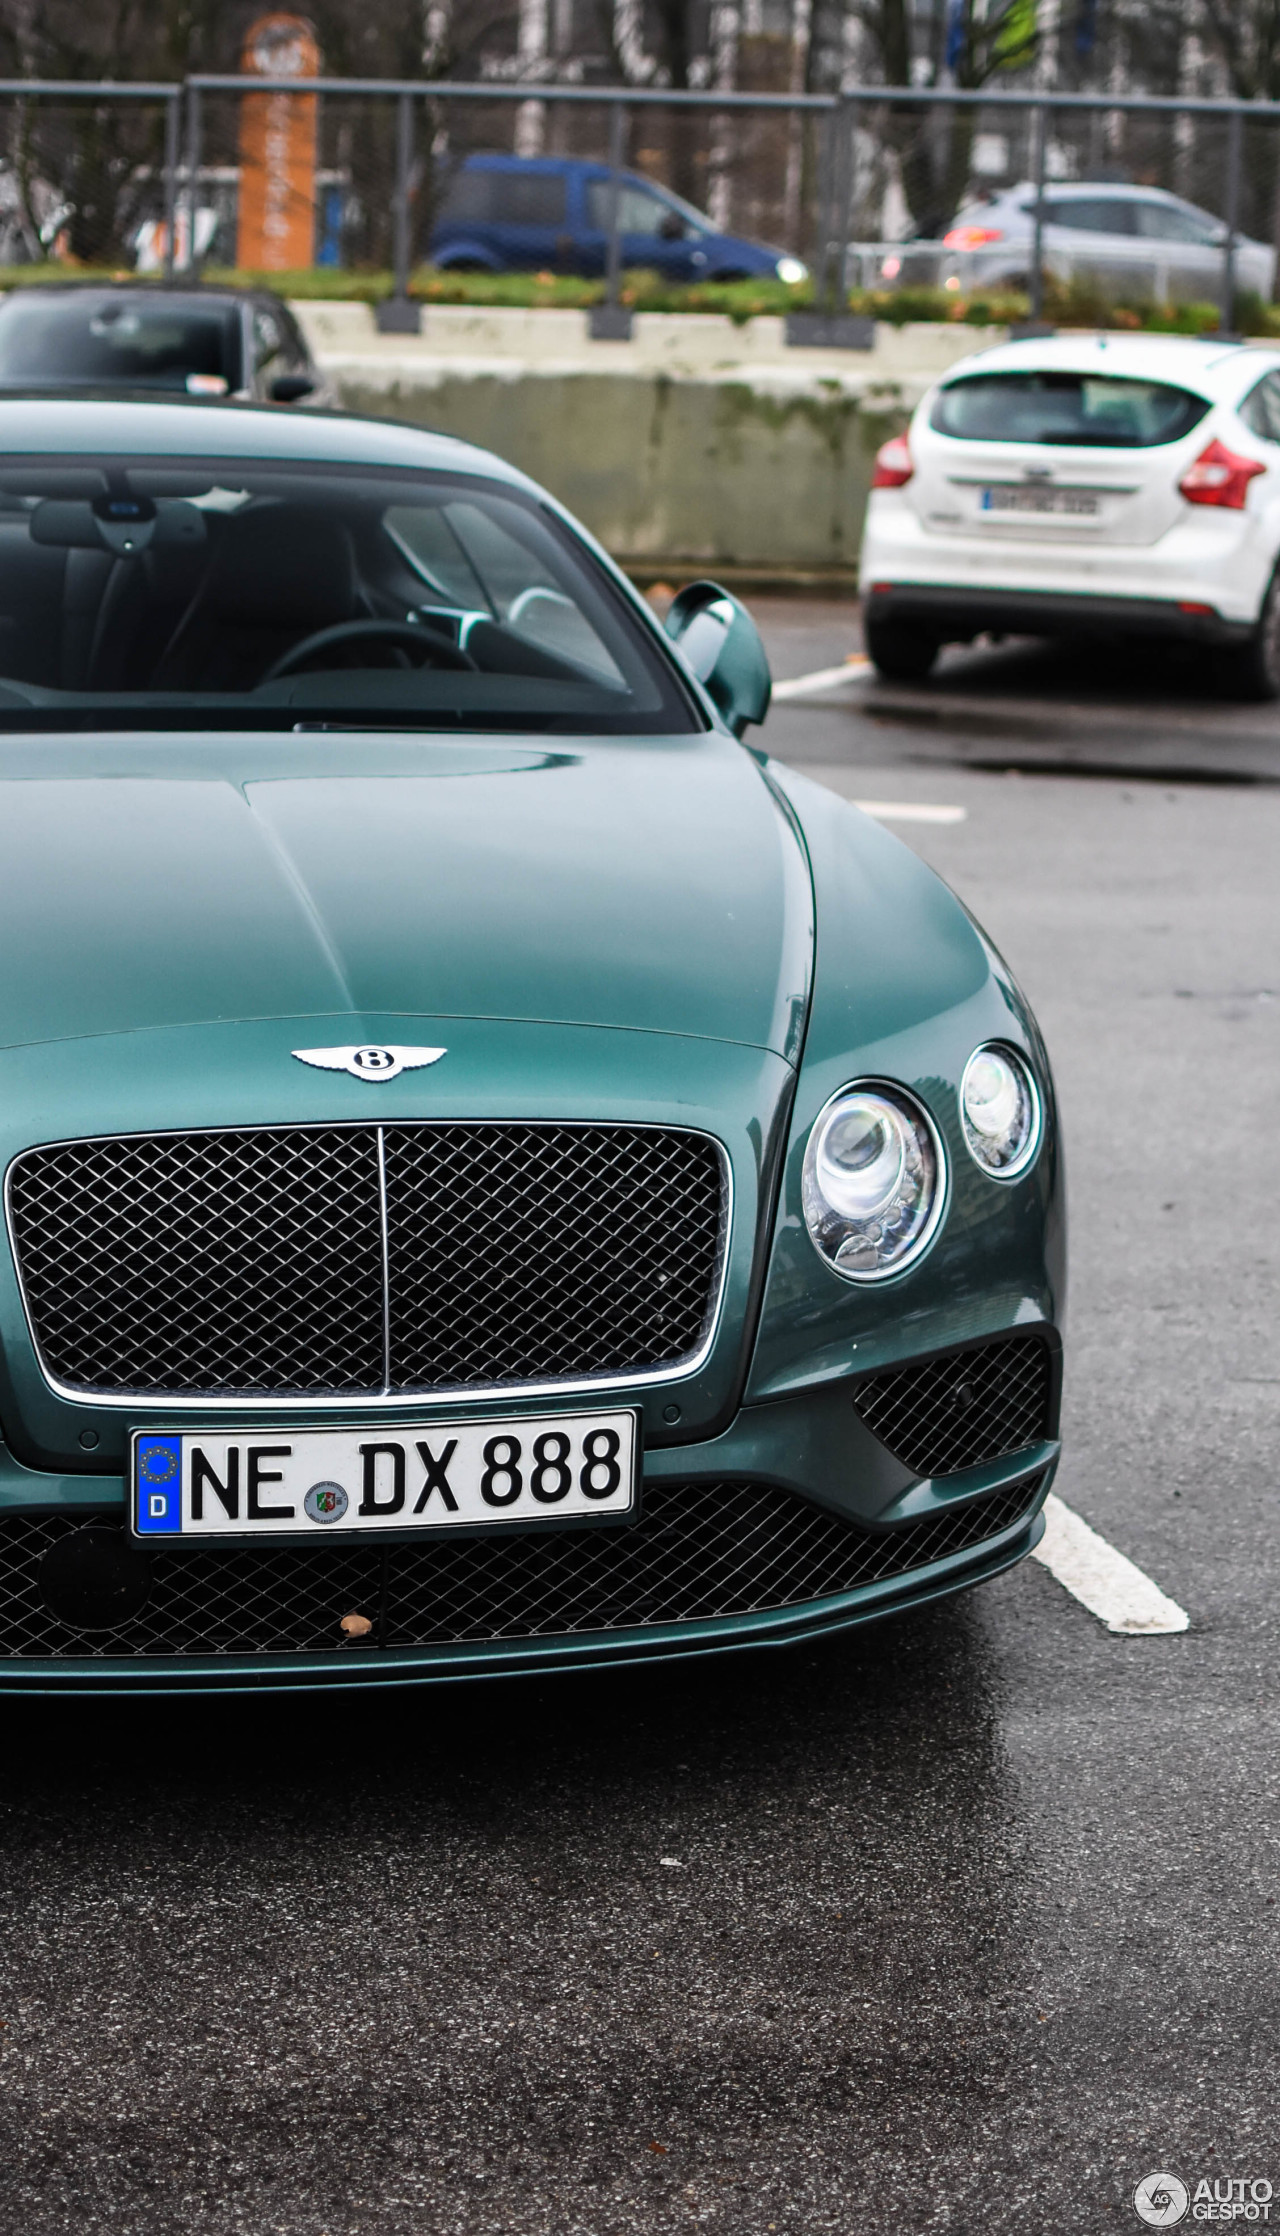 bentley continental gt speed 2016 6 december 2017 autogespot. Black Bedroom Furniture Sets. Home Design Ideas